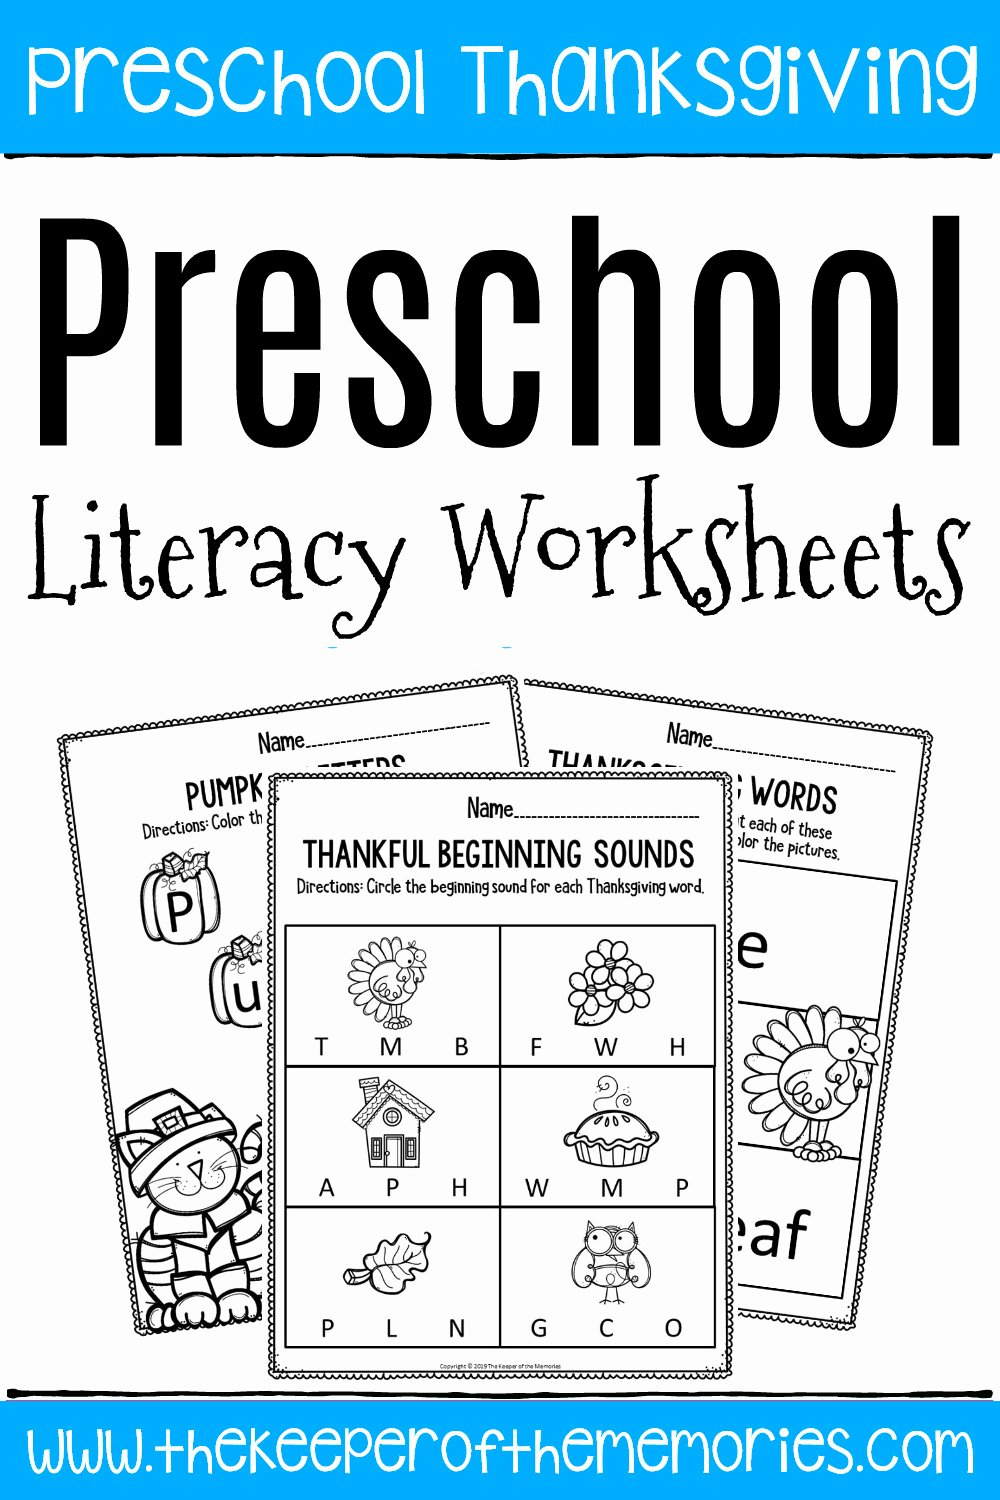 Literacy Worksheets for Preschoolers Lovely Math Worksheet Kindergarten Literacy Activities Worksheets